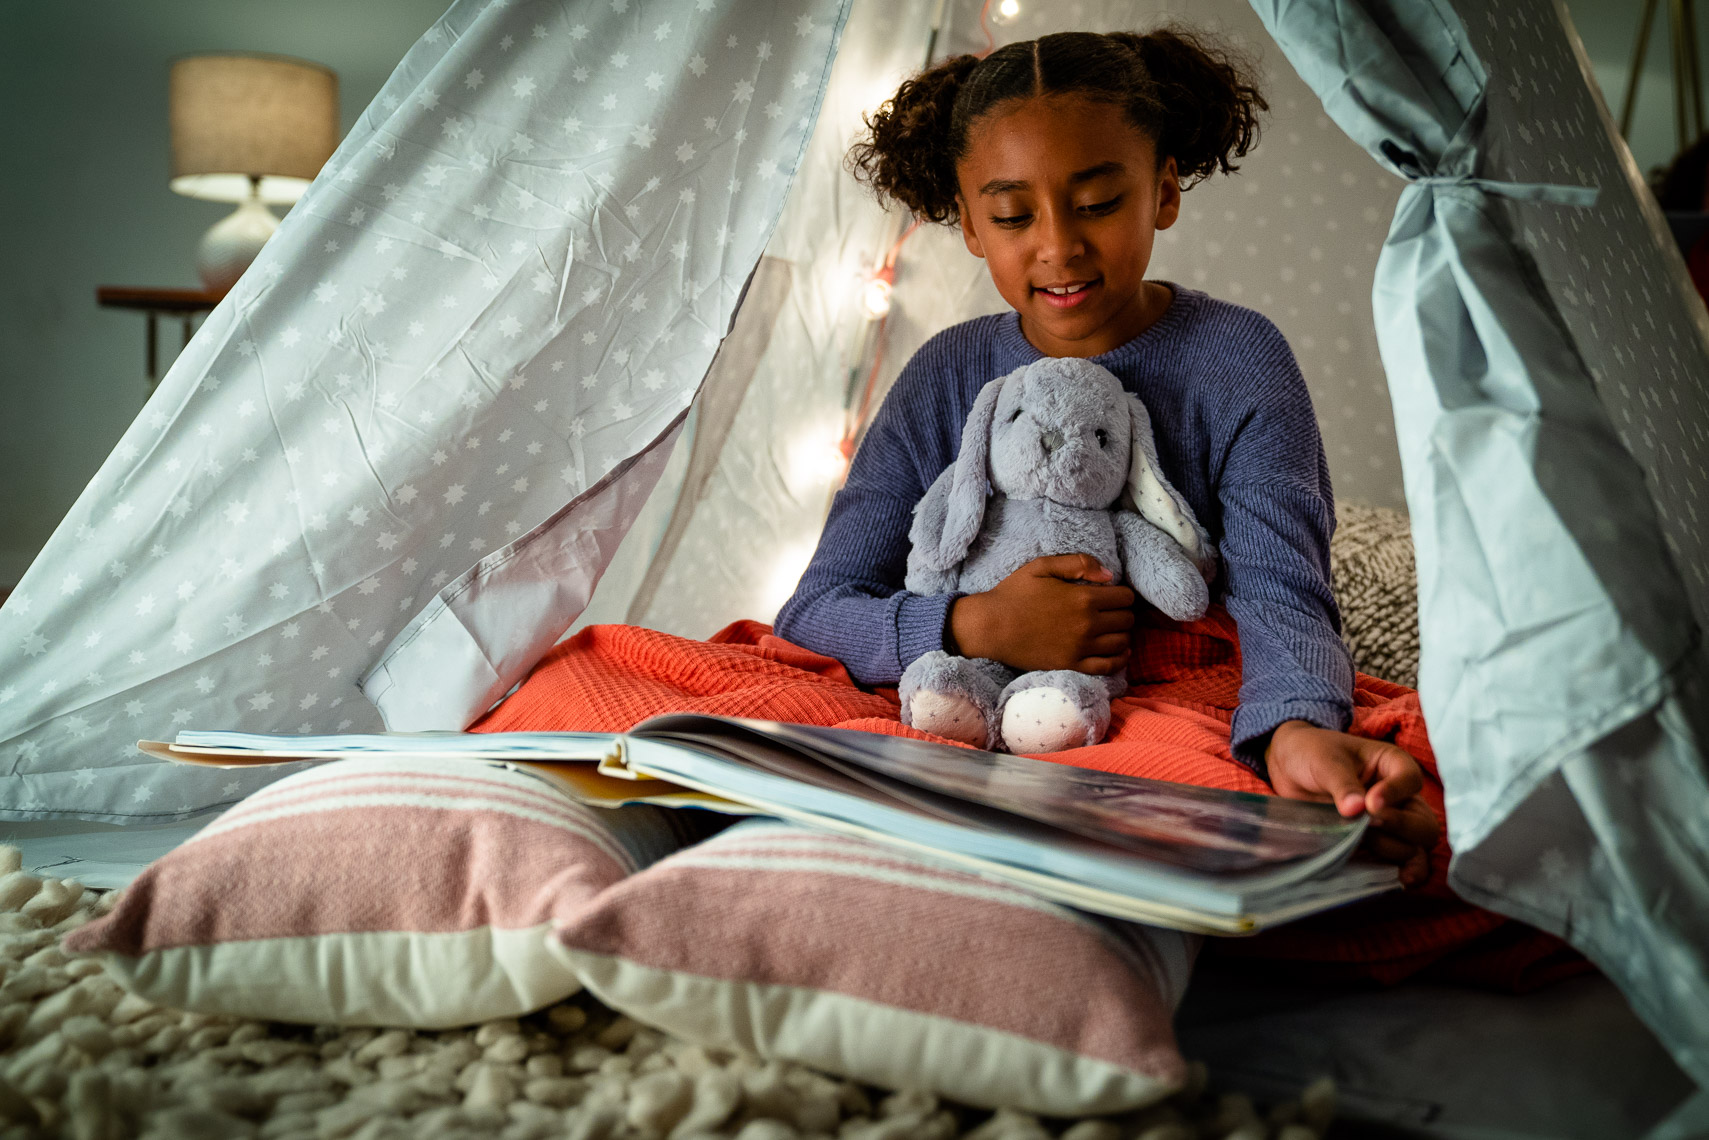 Avast - Young Girl Reading Book in Living Room Tent